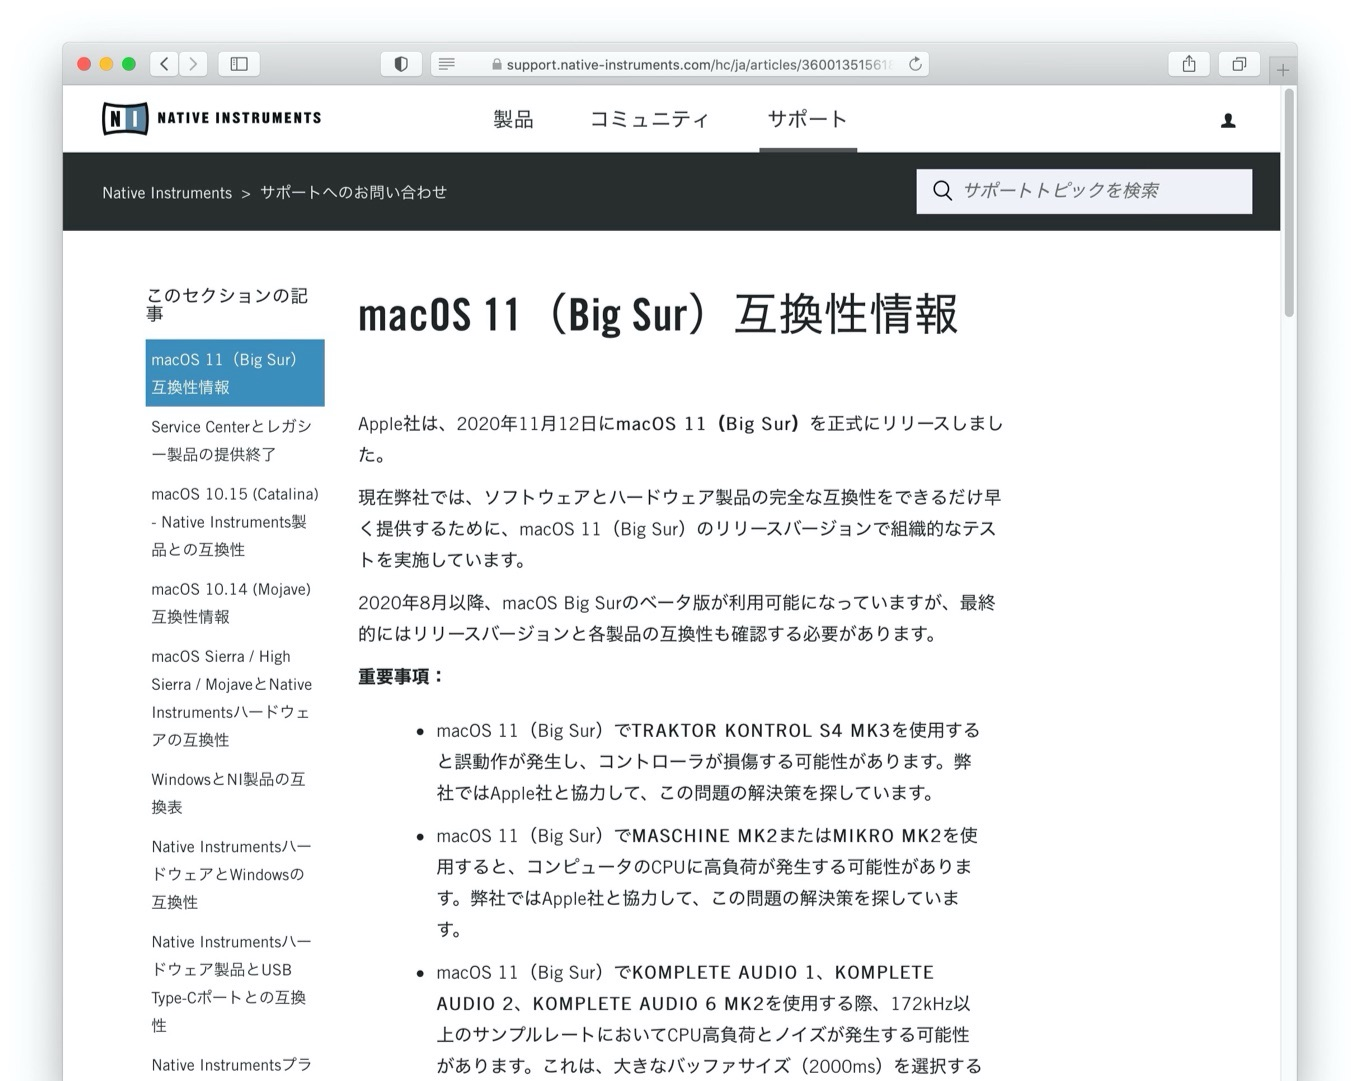 macOS 11 Big Sur Compatibility News with Native Instruments